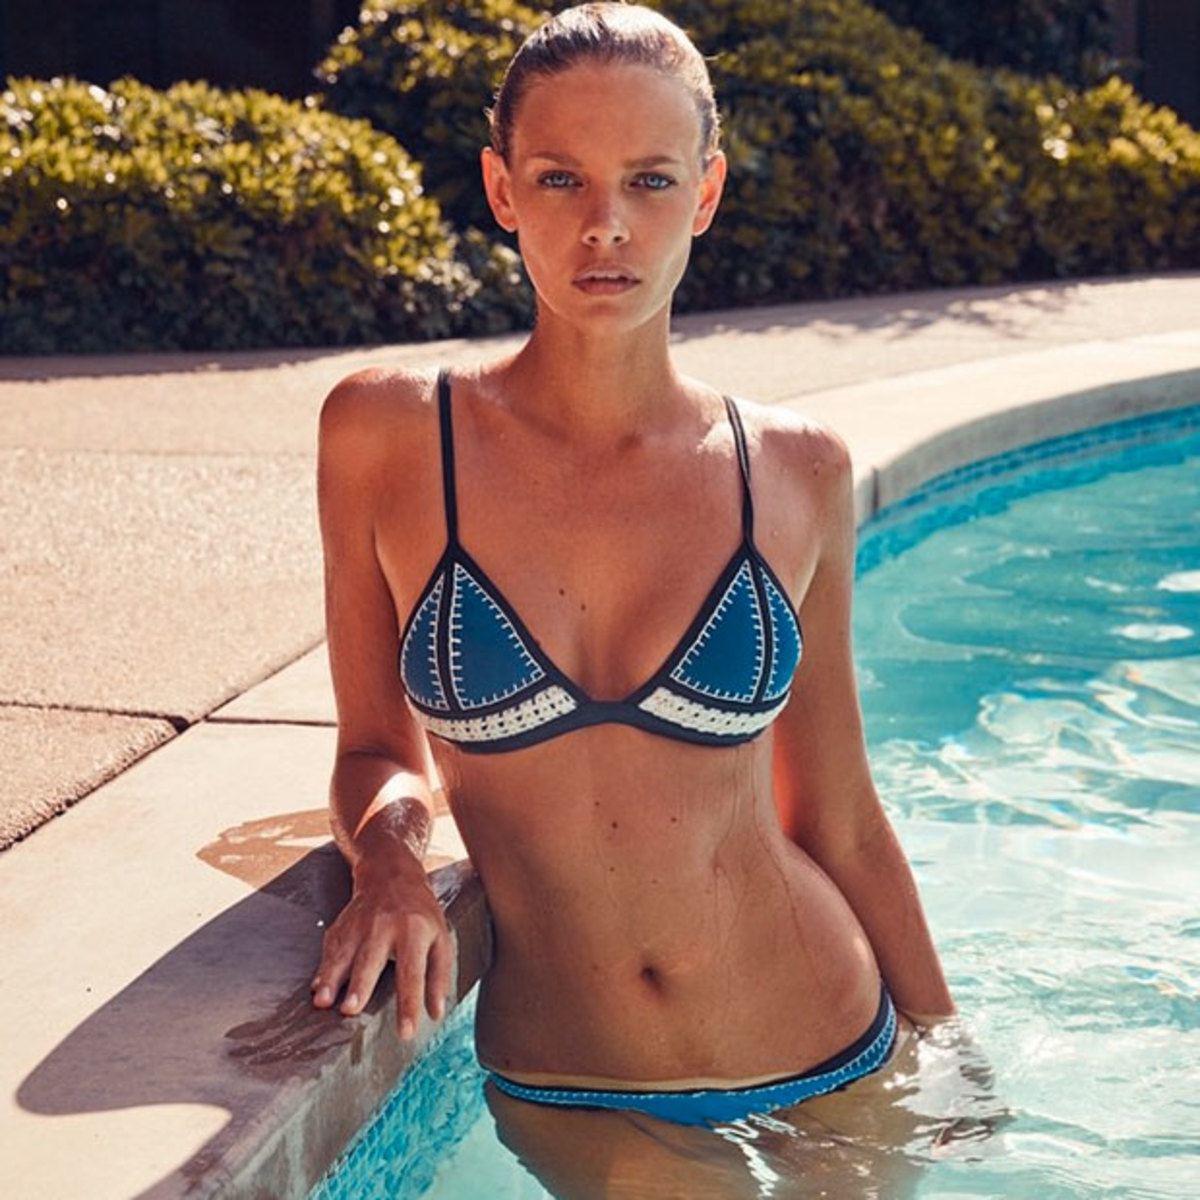 Water Baby: Triangl's Latest Collection The Farrah Crochet + Neoprene Bikini Featuring @marloeshorst wearing 'Hotel California' On Location at Frank Sinatra's House All New Arrivals, Online Now